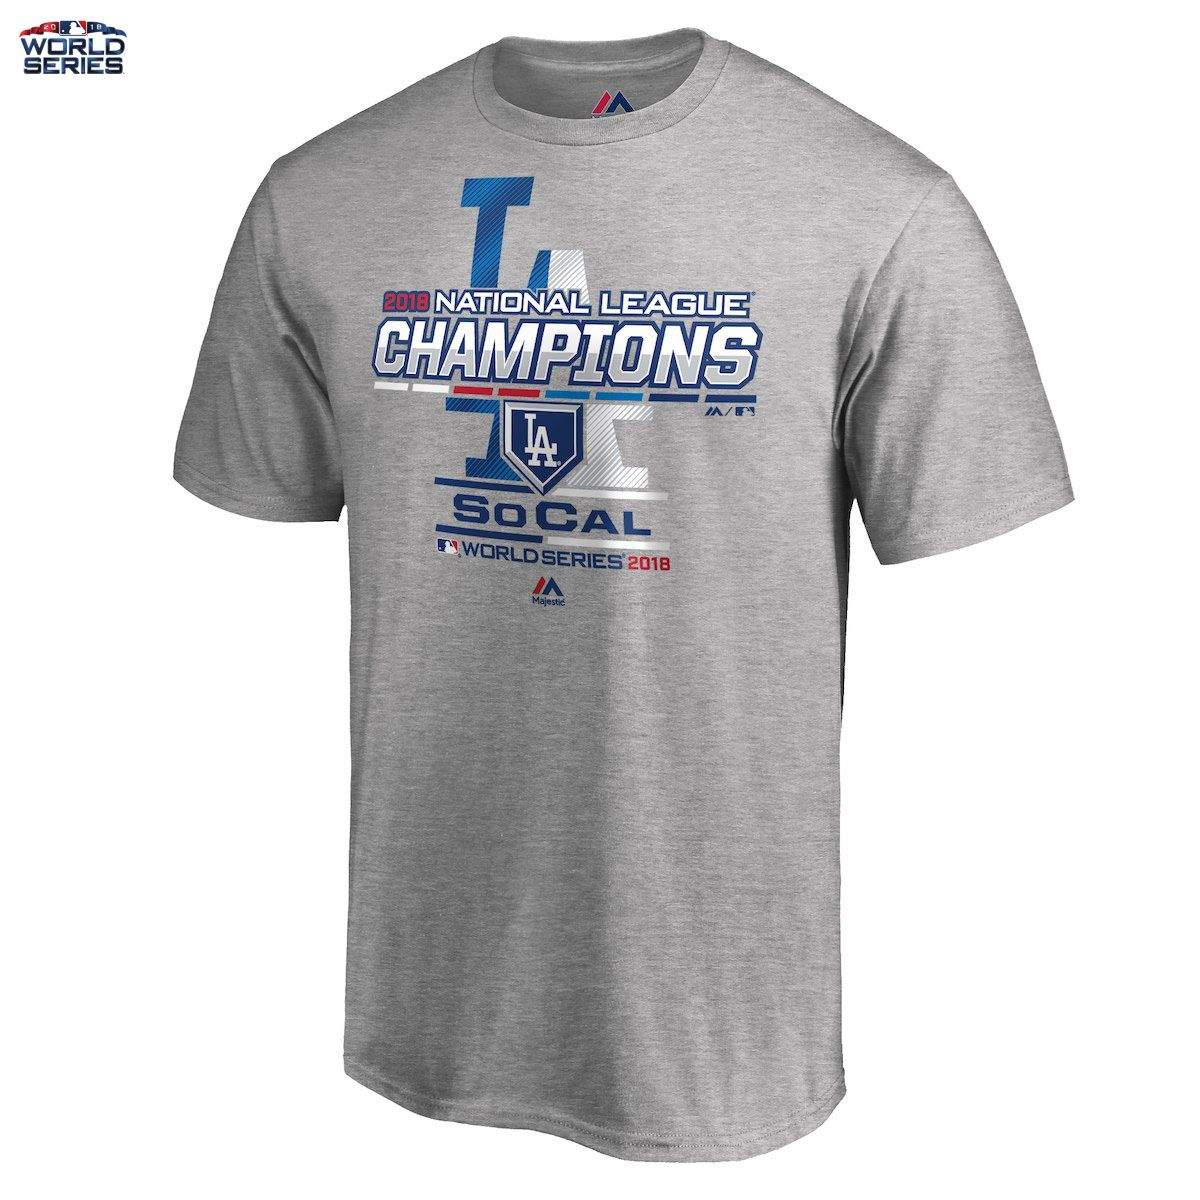 4085f4442ce Details about Los Angeles Dodgers 2018 World Series Majestic T-Shirt ...